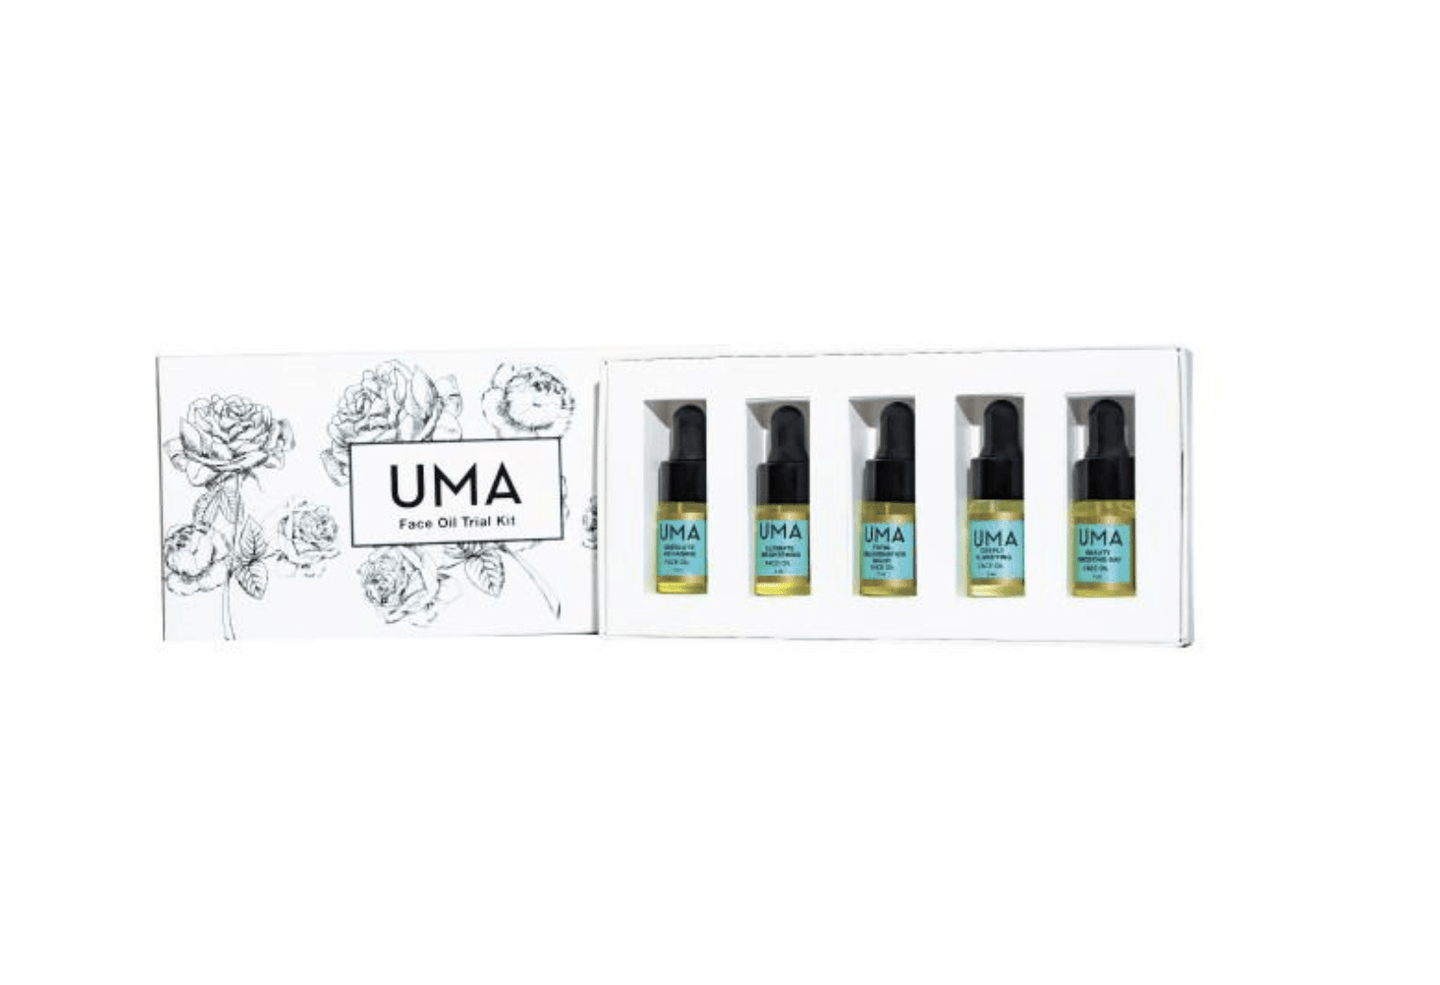 UMA Face Oils Trial Kit